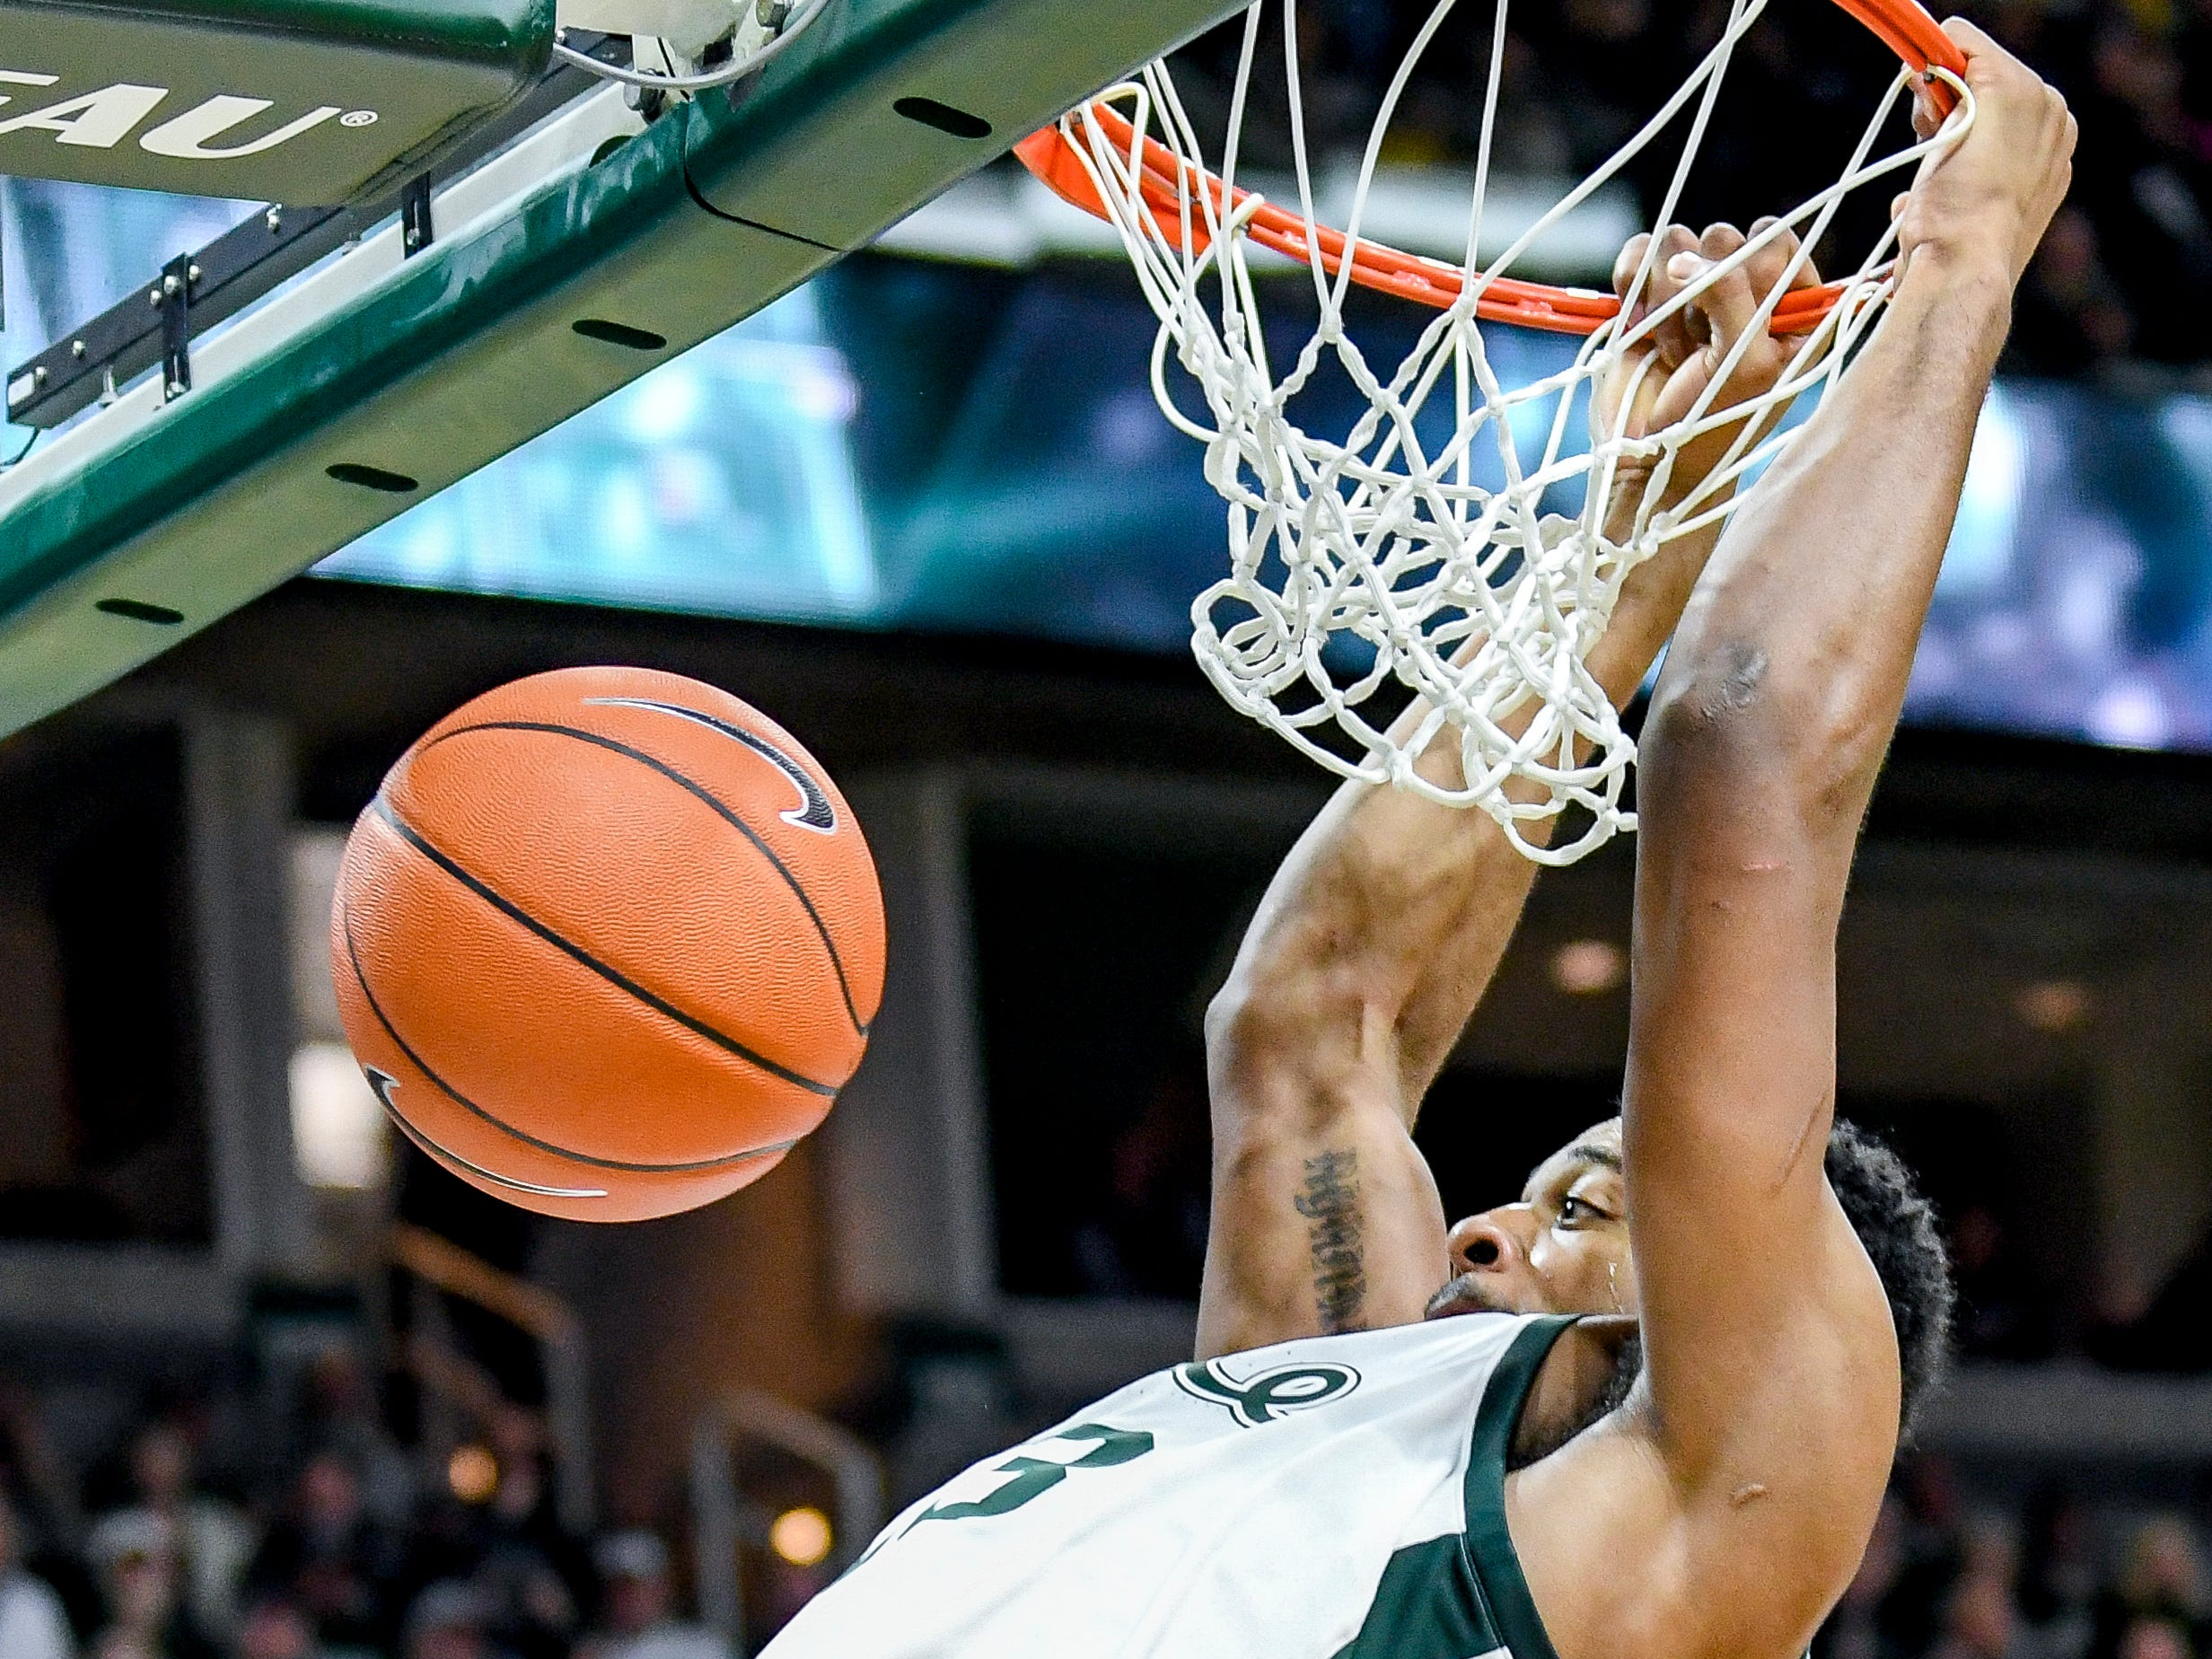 Michigan State's Xavier Tillman dunks during the second half on Monday, Dec. 3, 2018, at the Breslin Center in East Lansing. Michigan State beat Iowa 90-68.